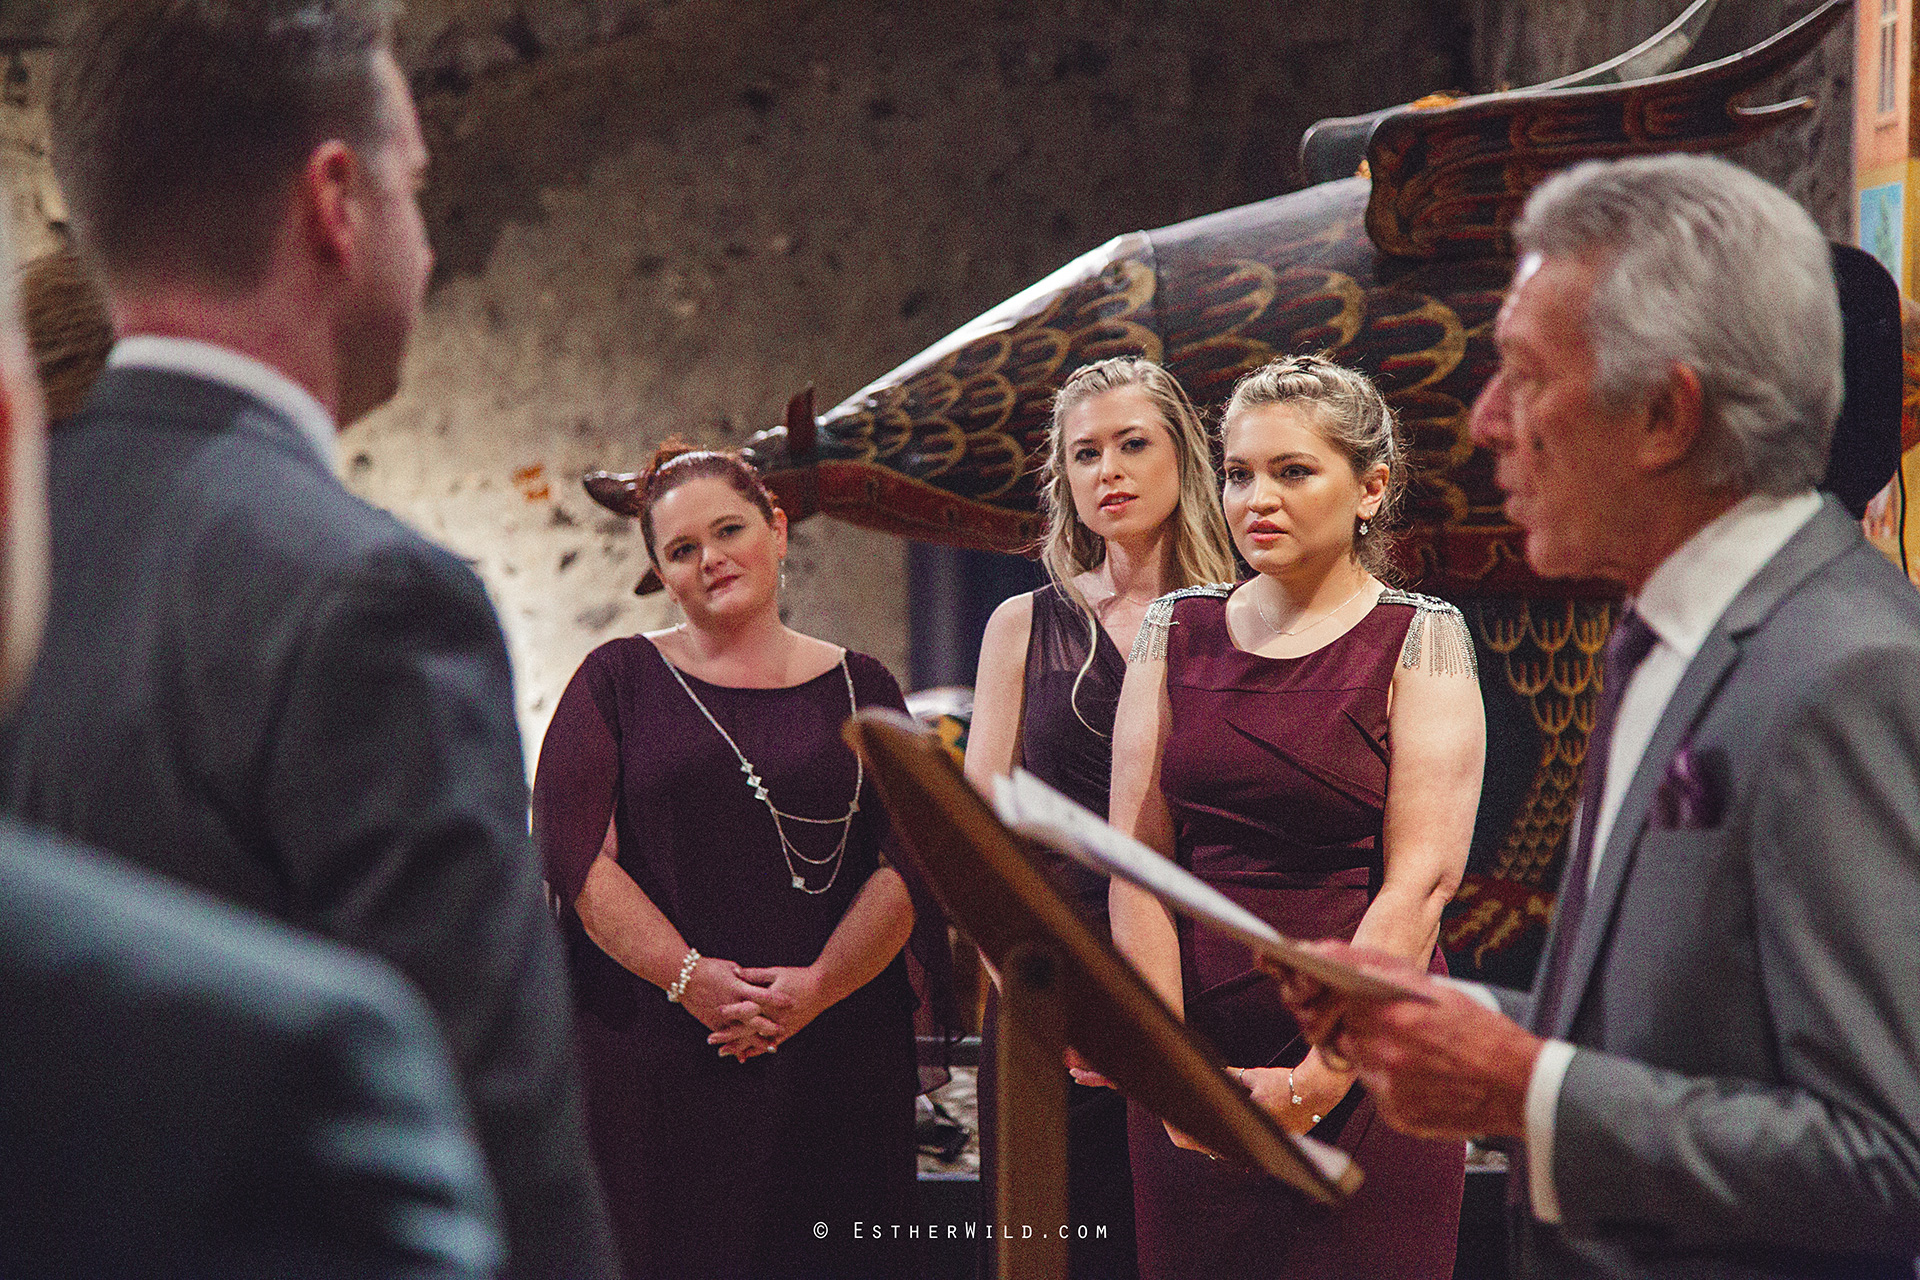 norwich_castle_wedding_esther_wild_photographer_norfolk (25).jpg